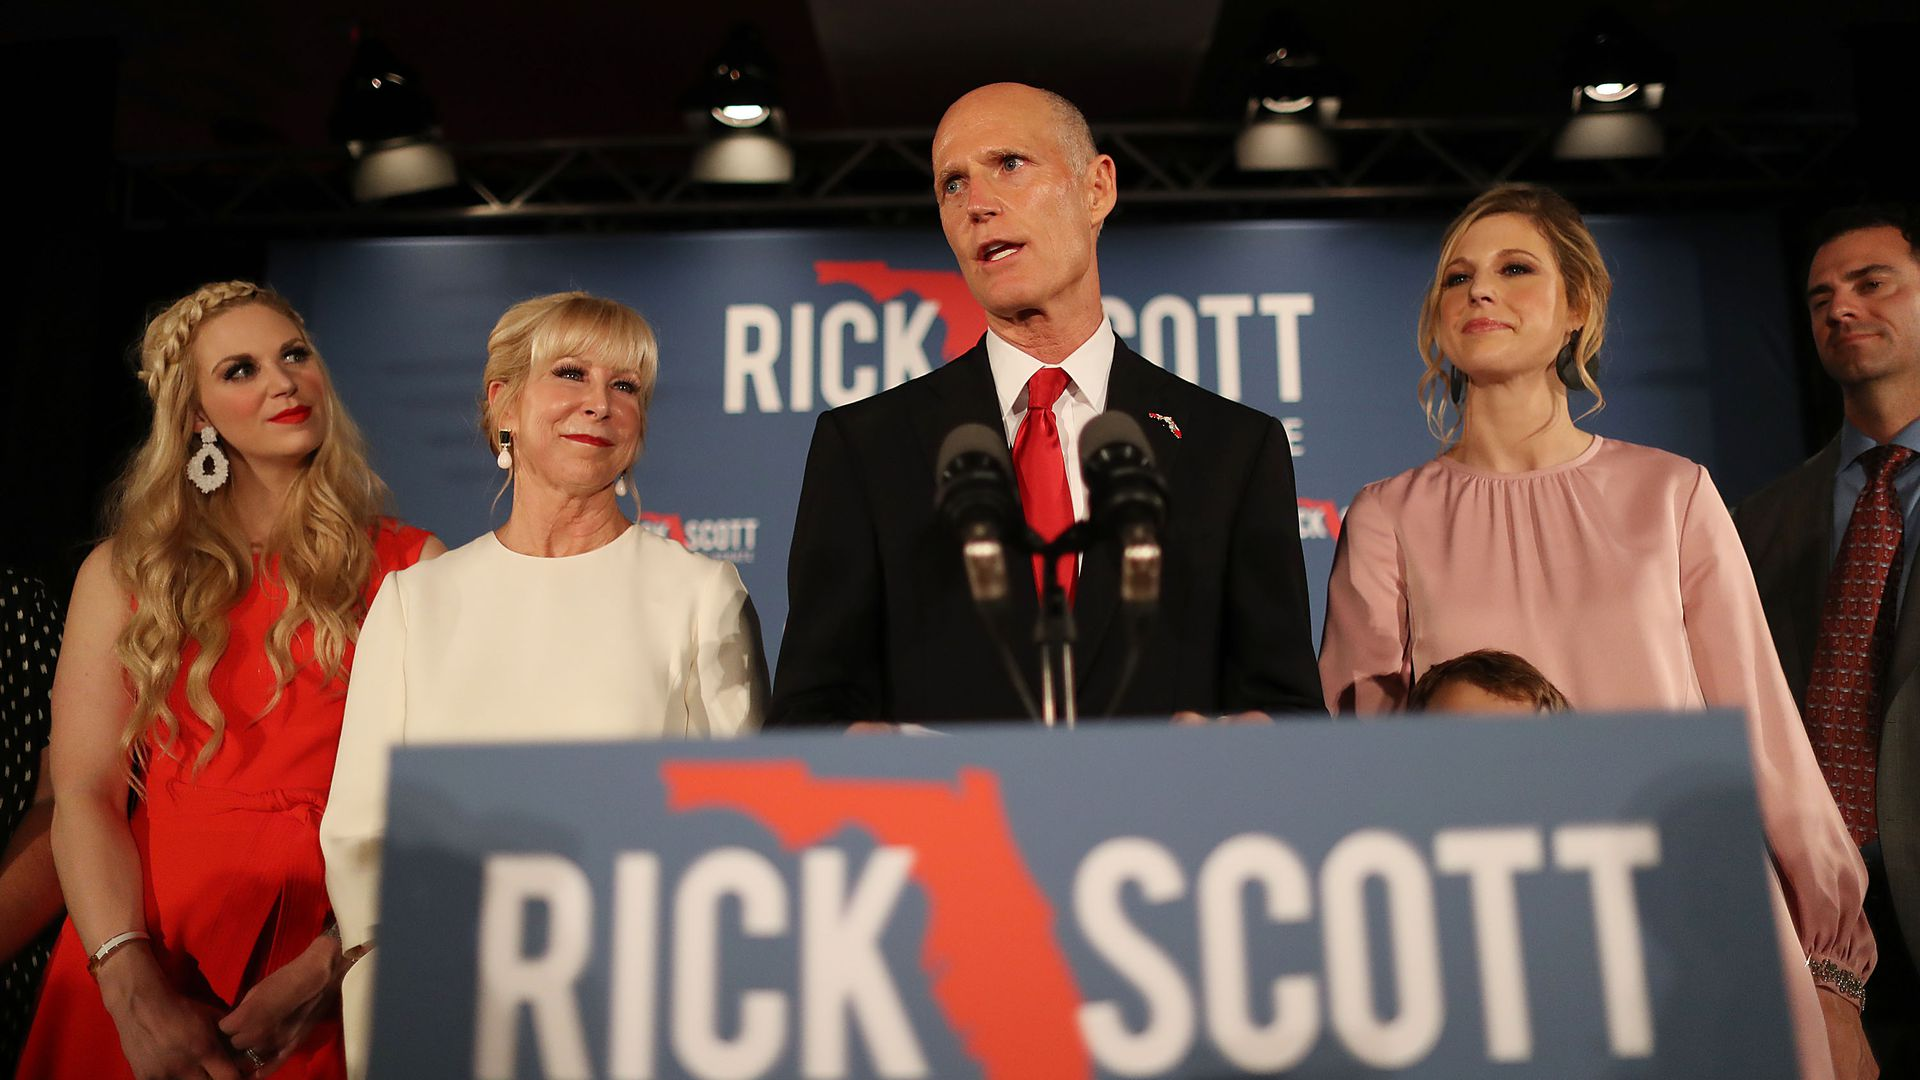 Governor Rick Scott at campaign speech